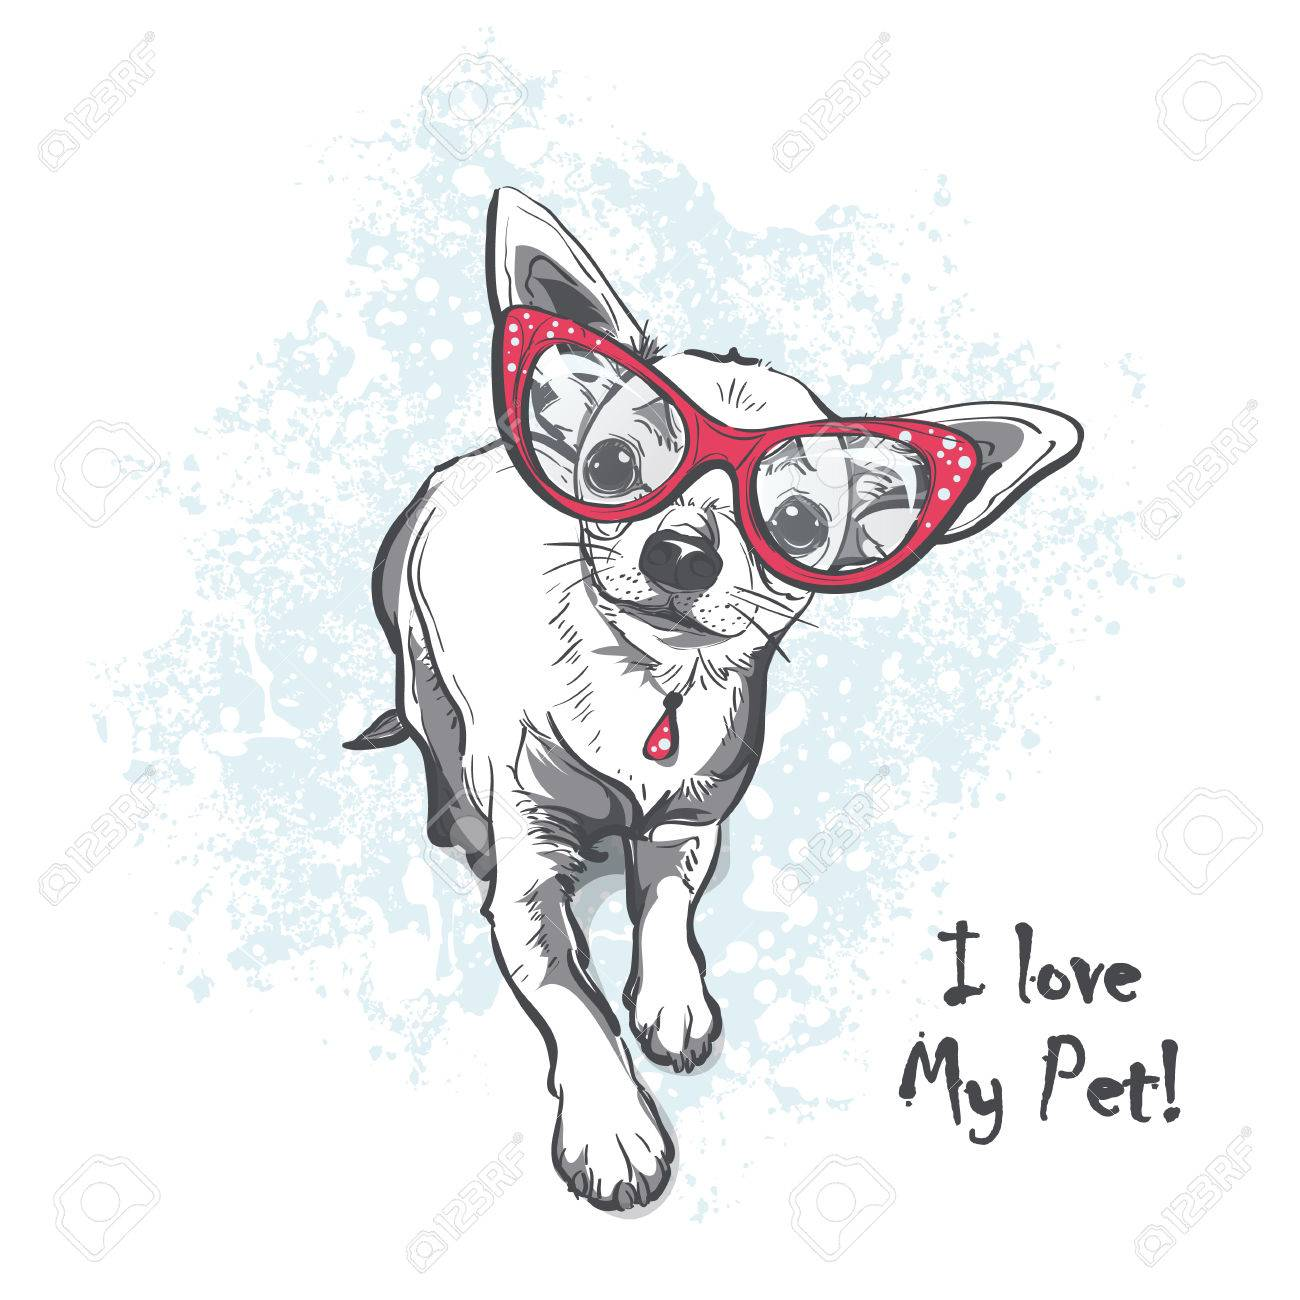 Funny puppy chihuahua wearing glasses  Contour cartoon illustration